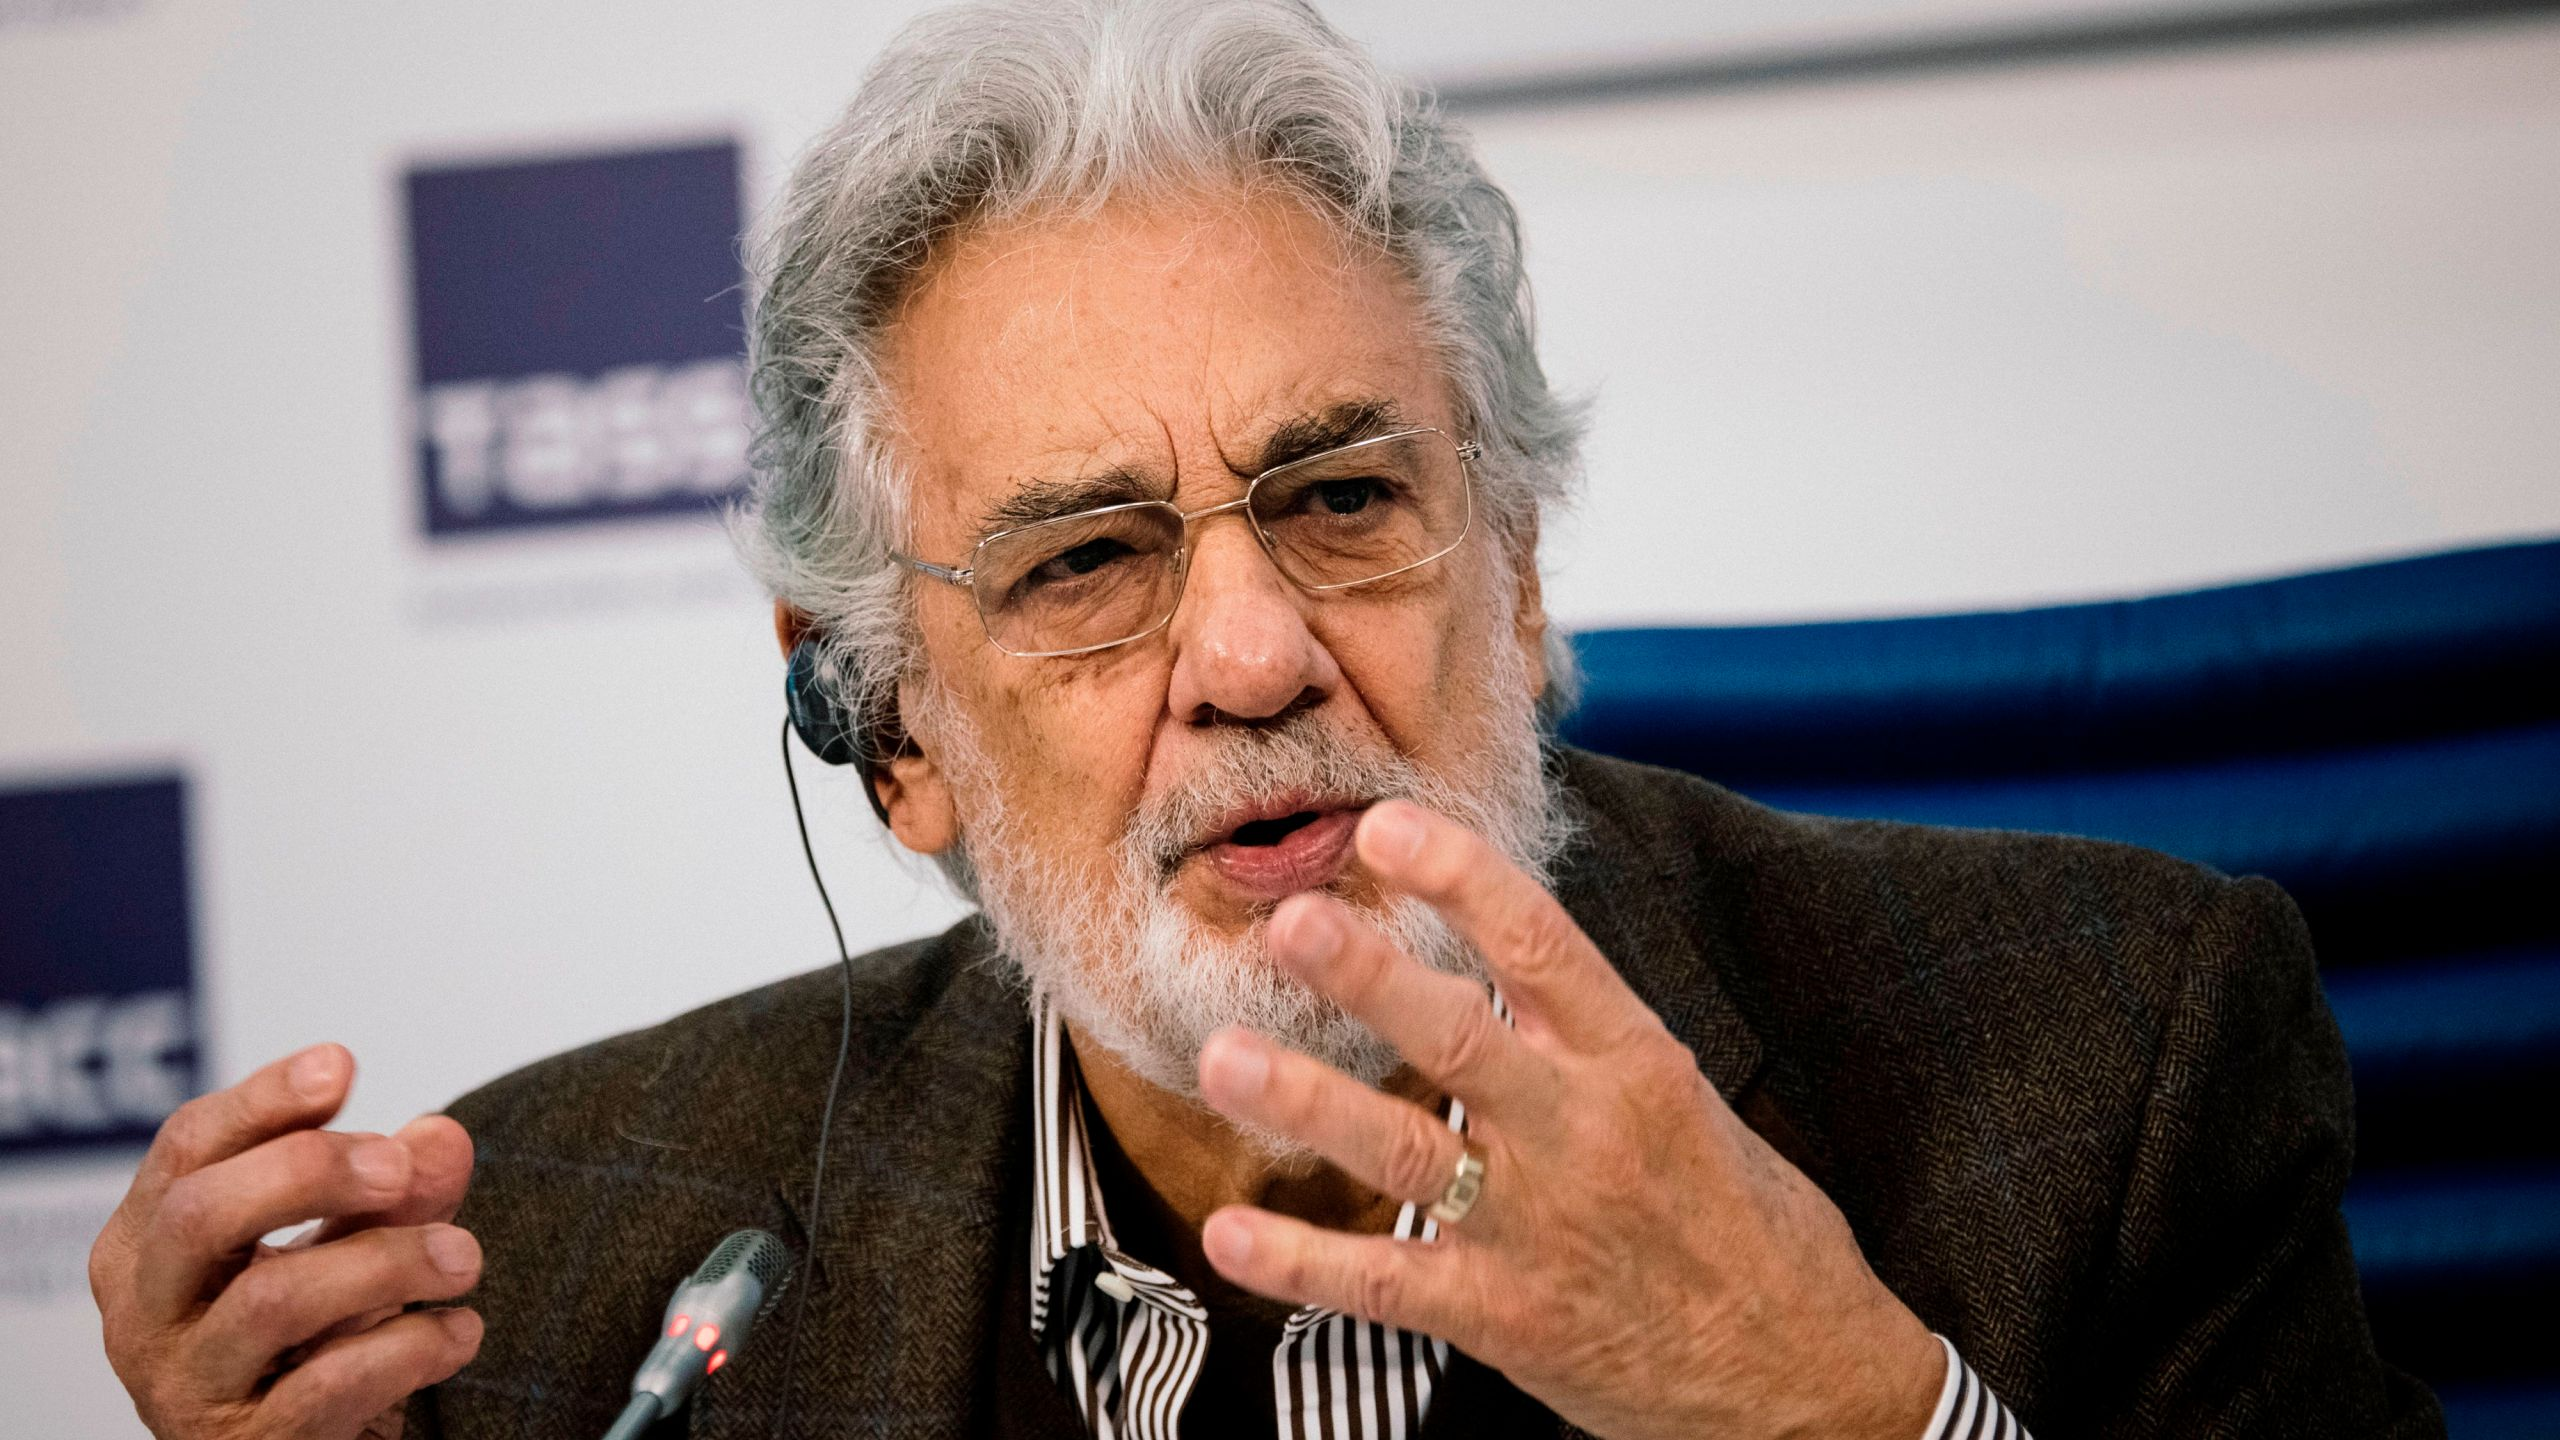 Spanish tenor Placido Domingo gives a press conference ahead of his concert in Moscow on Oct. 15, 2019. (Dimitar DILKOFF / AFP / Getty Images)